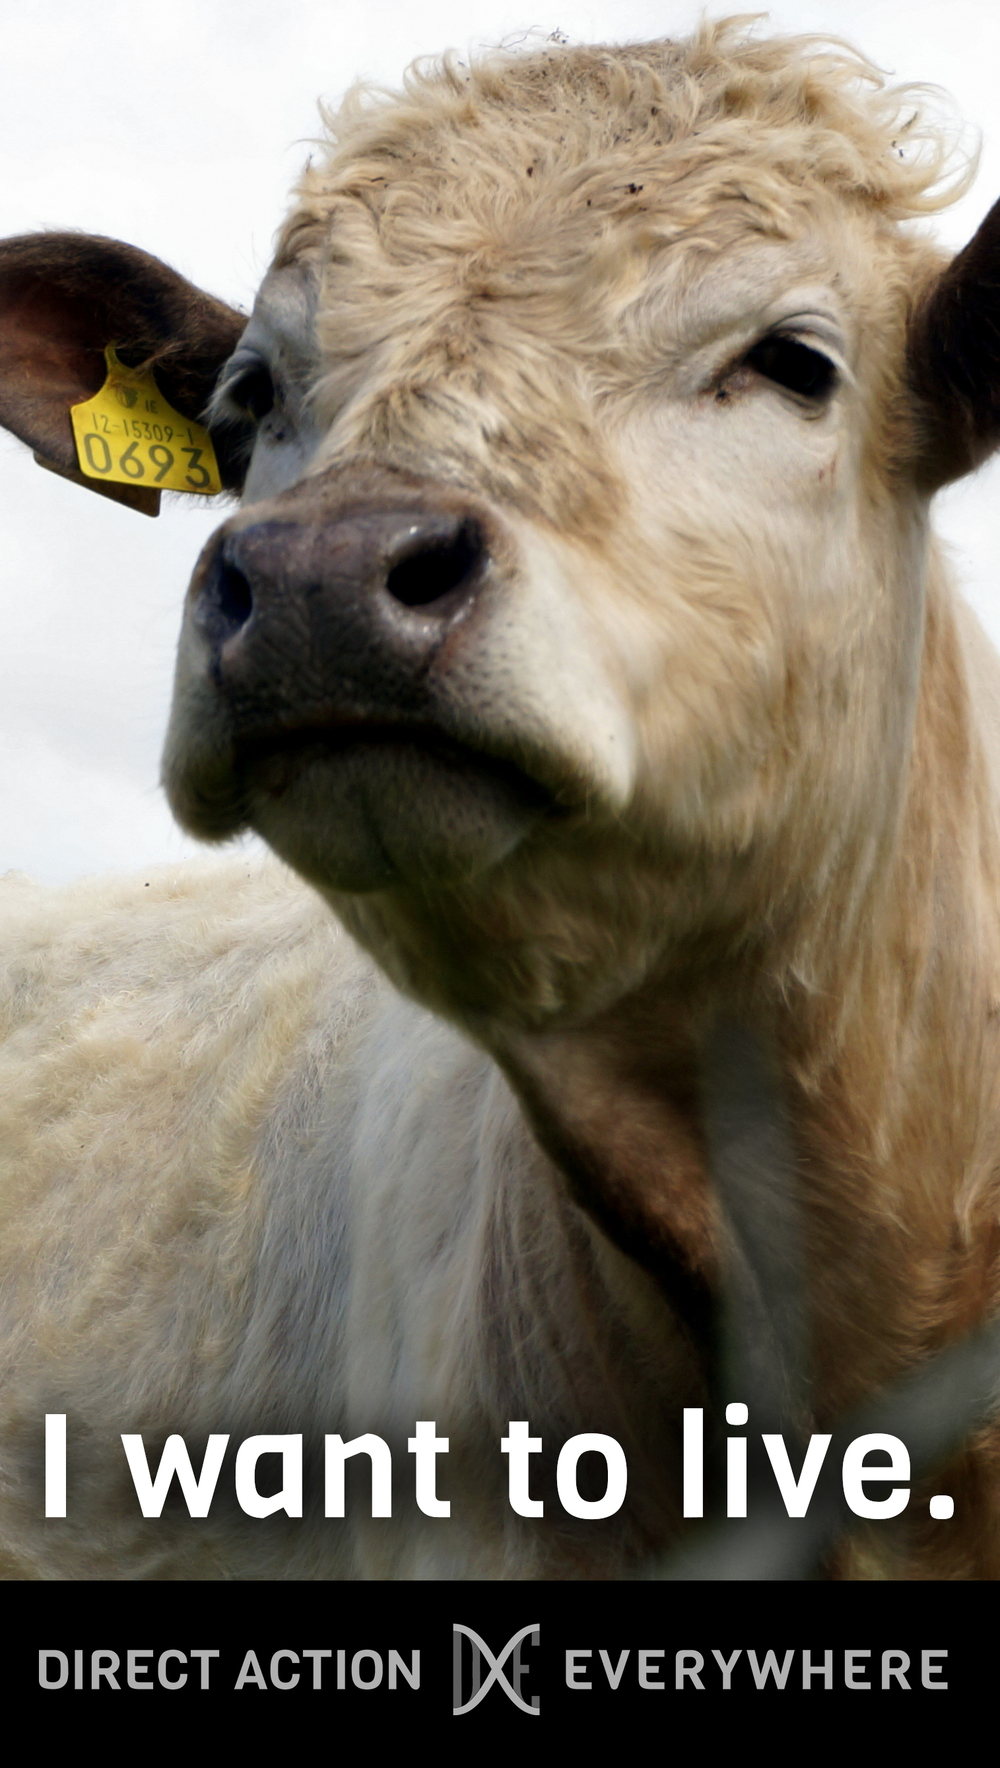 iwanttolive_cow.jpg